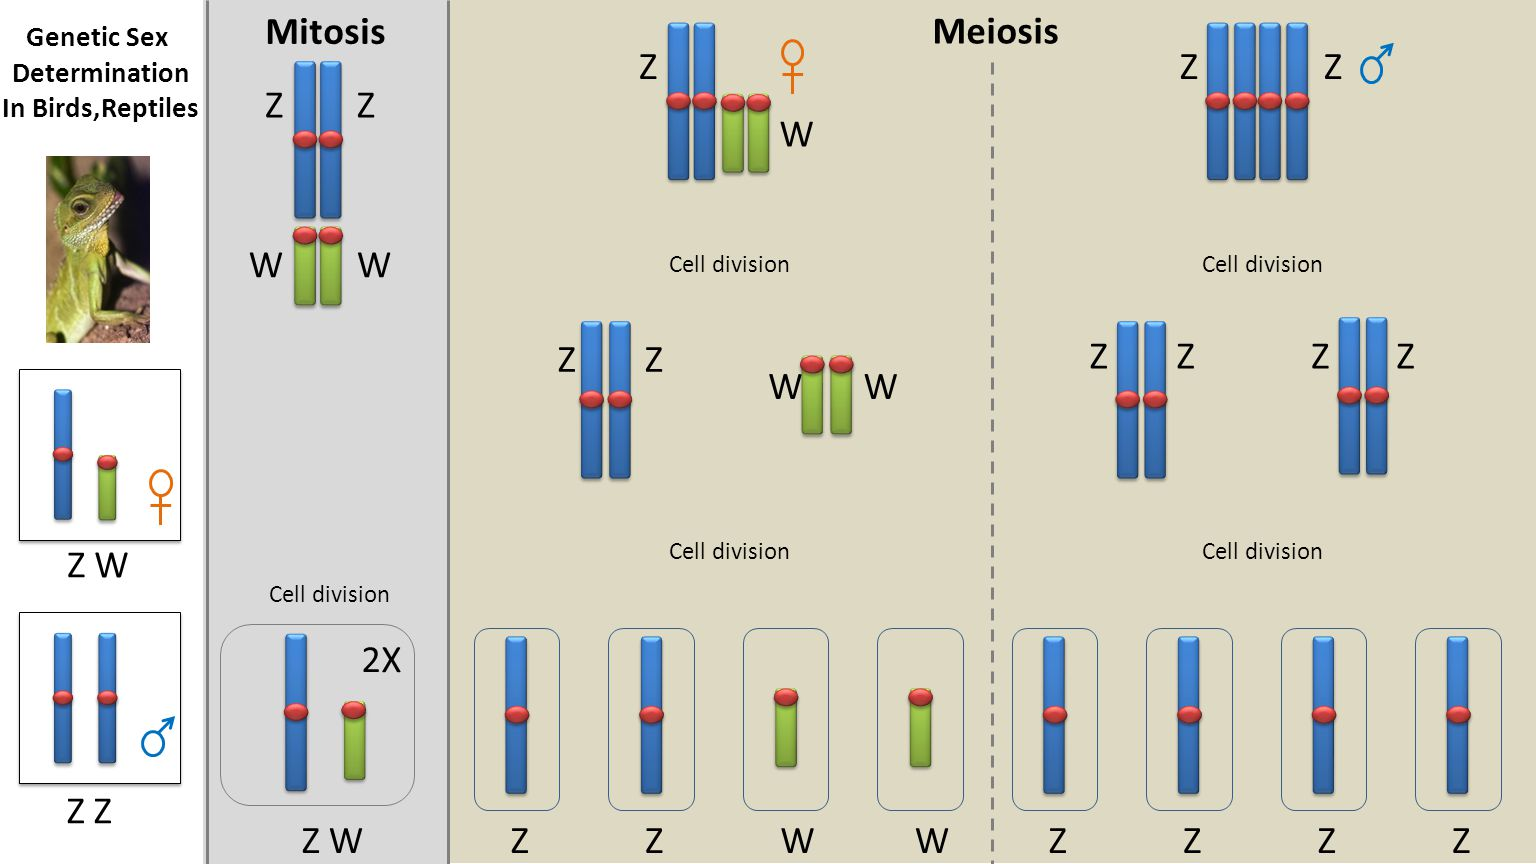 Meiosis Mitosis 2X Cell division Z WZWWZZZZZ ZZ WW Z W ZZ ZZZZ WW ZZ Z Z W Genetic Sex Determination In Birds,Reptiles